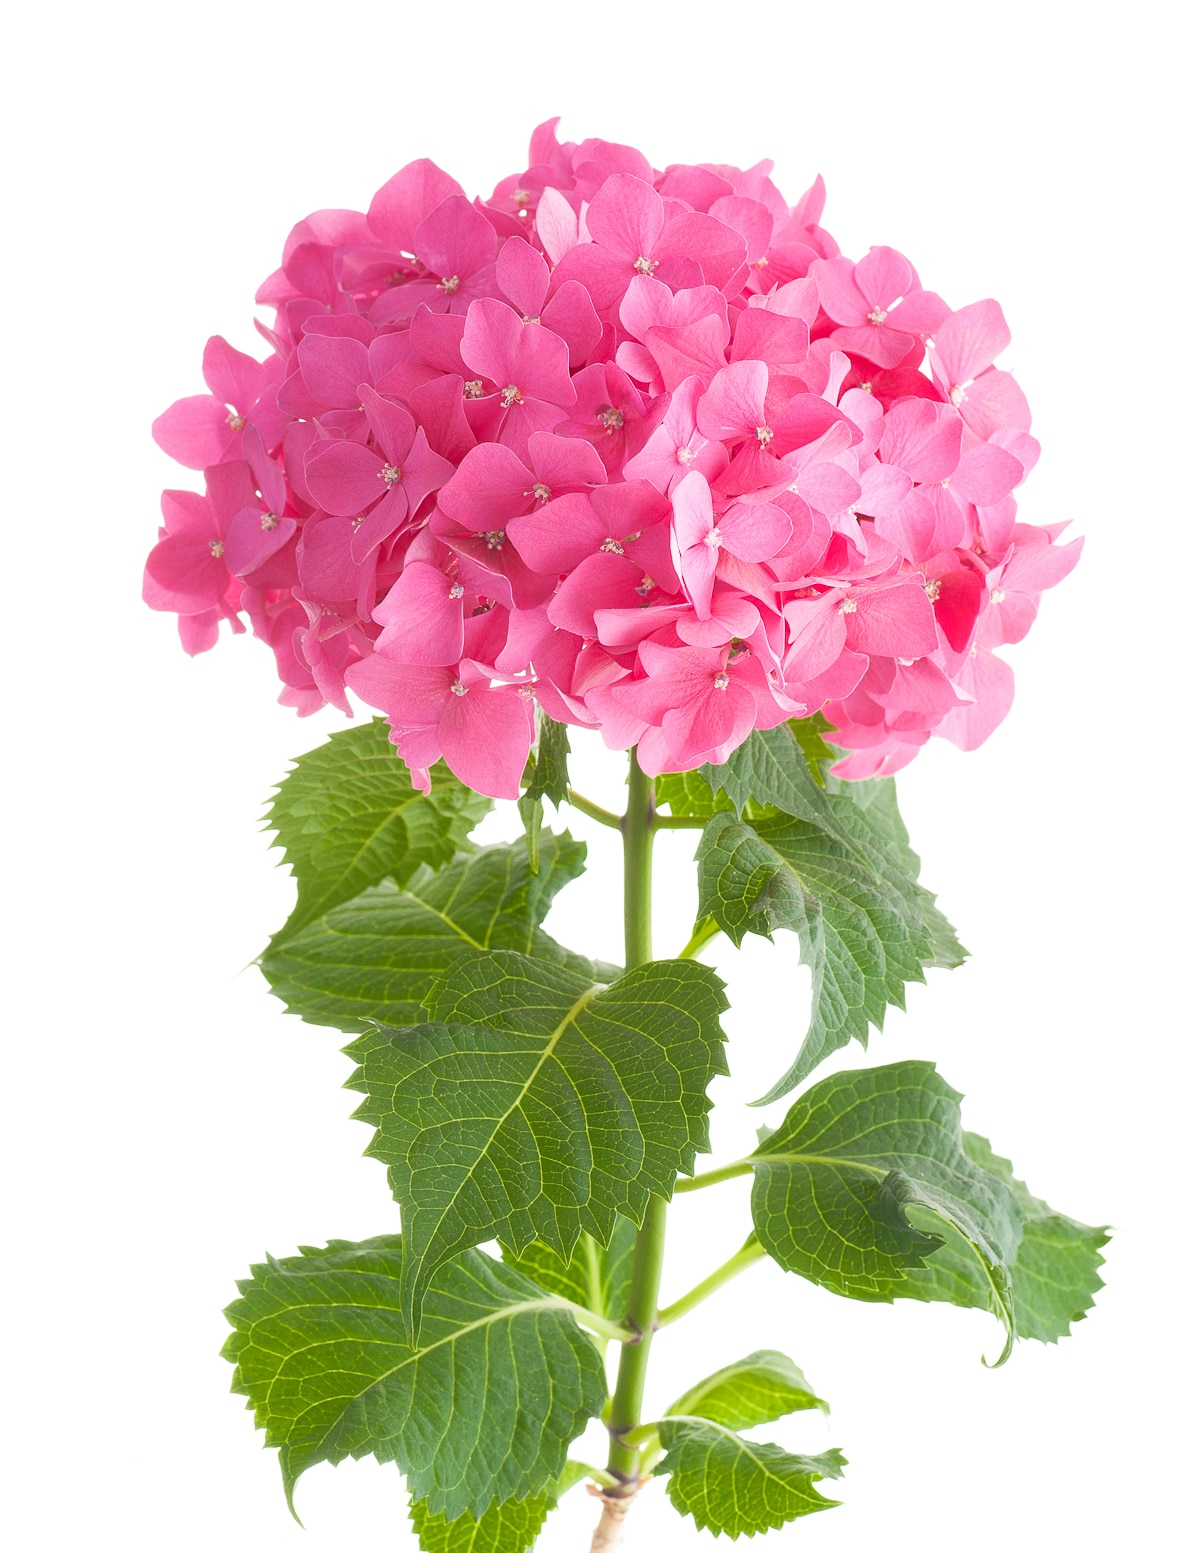 A bright pink Hydrangea flower head with soft green leaves against a bright isolated bright white backgroud